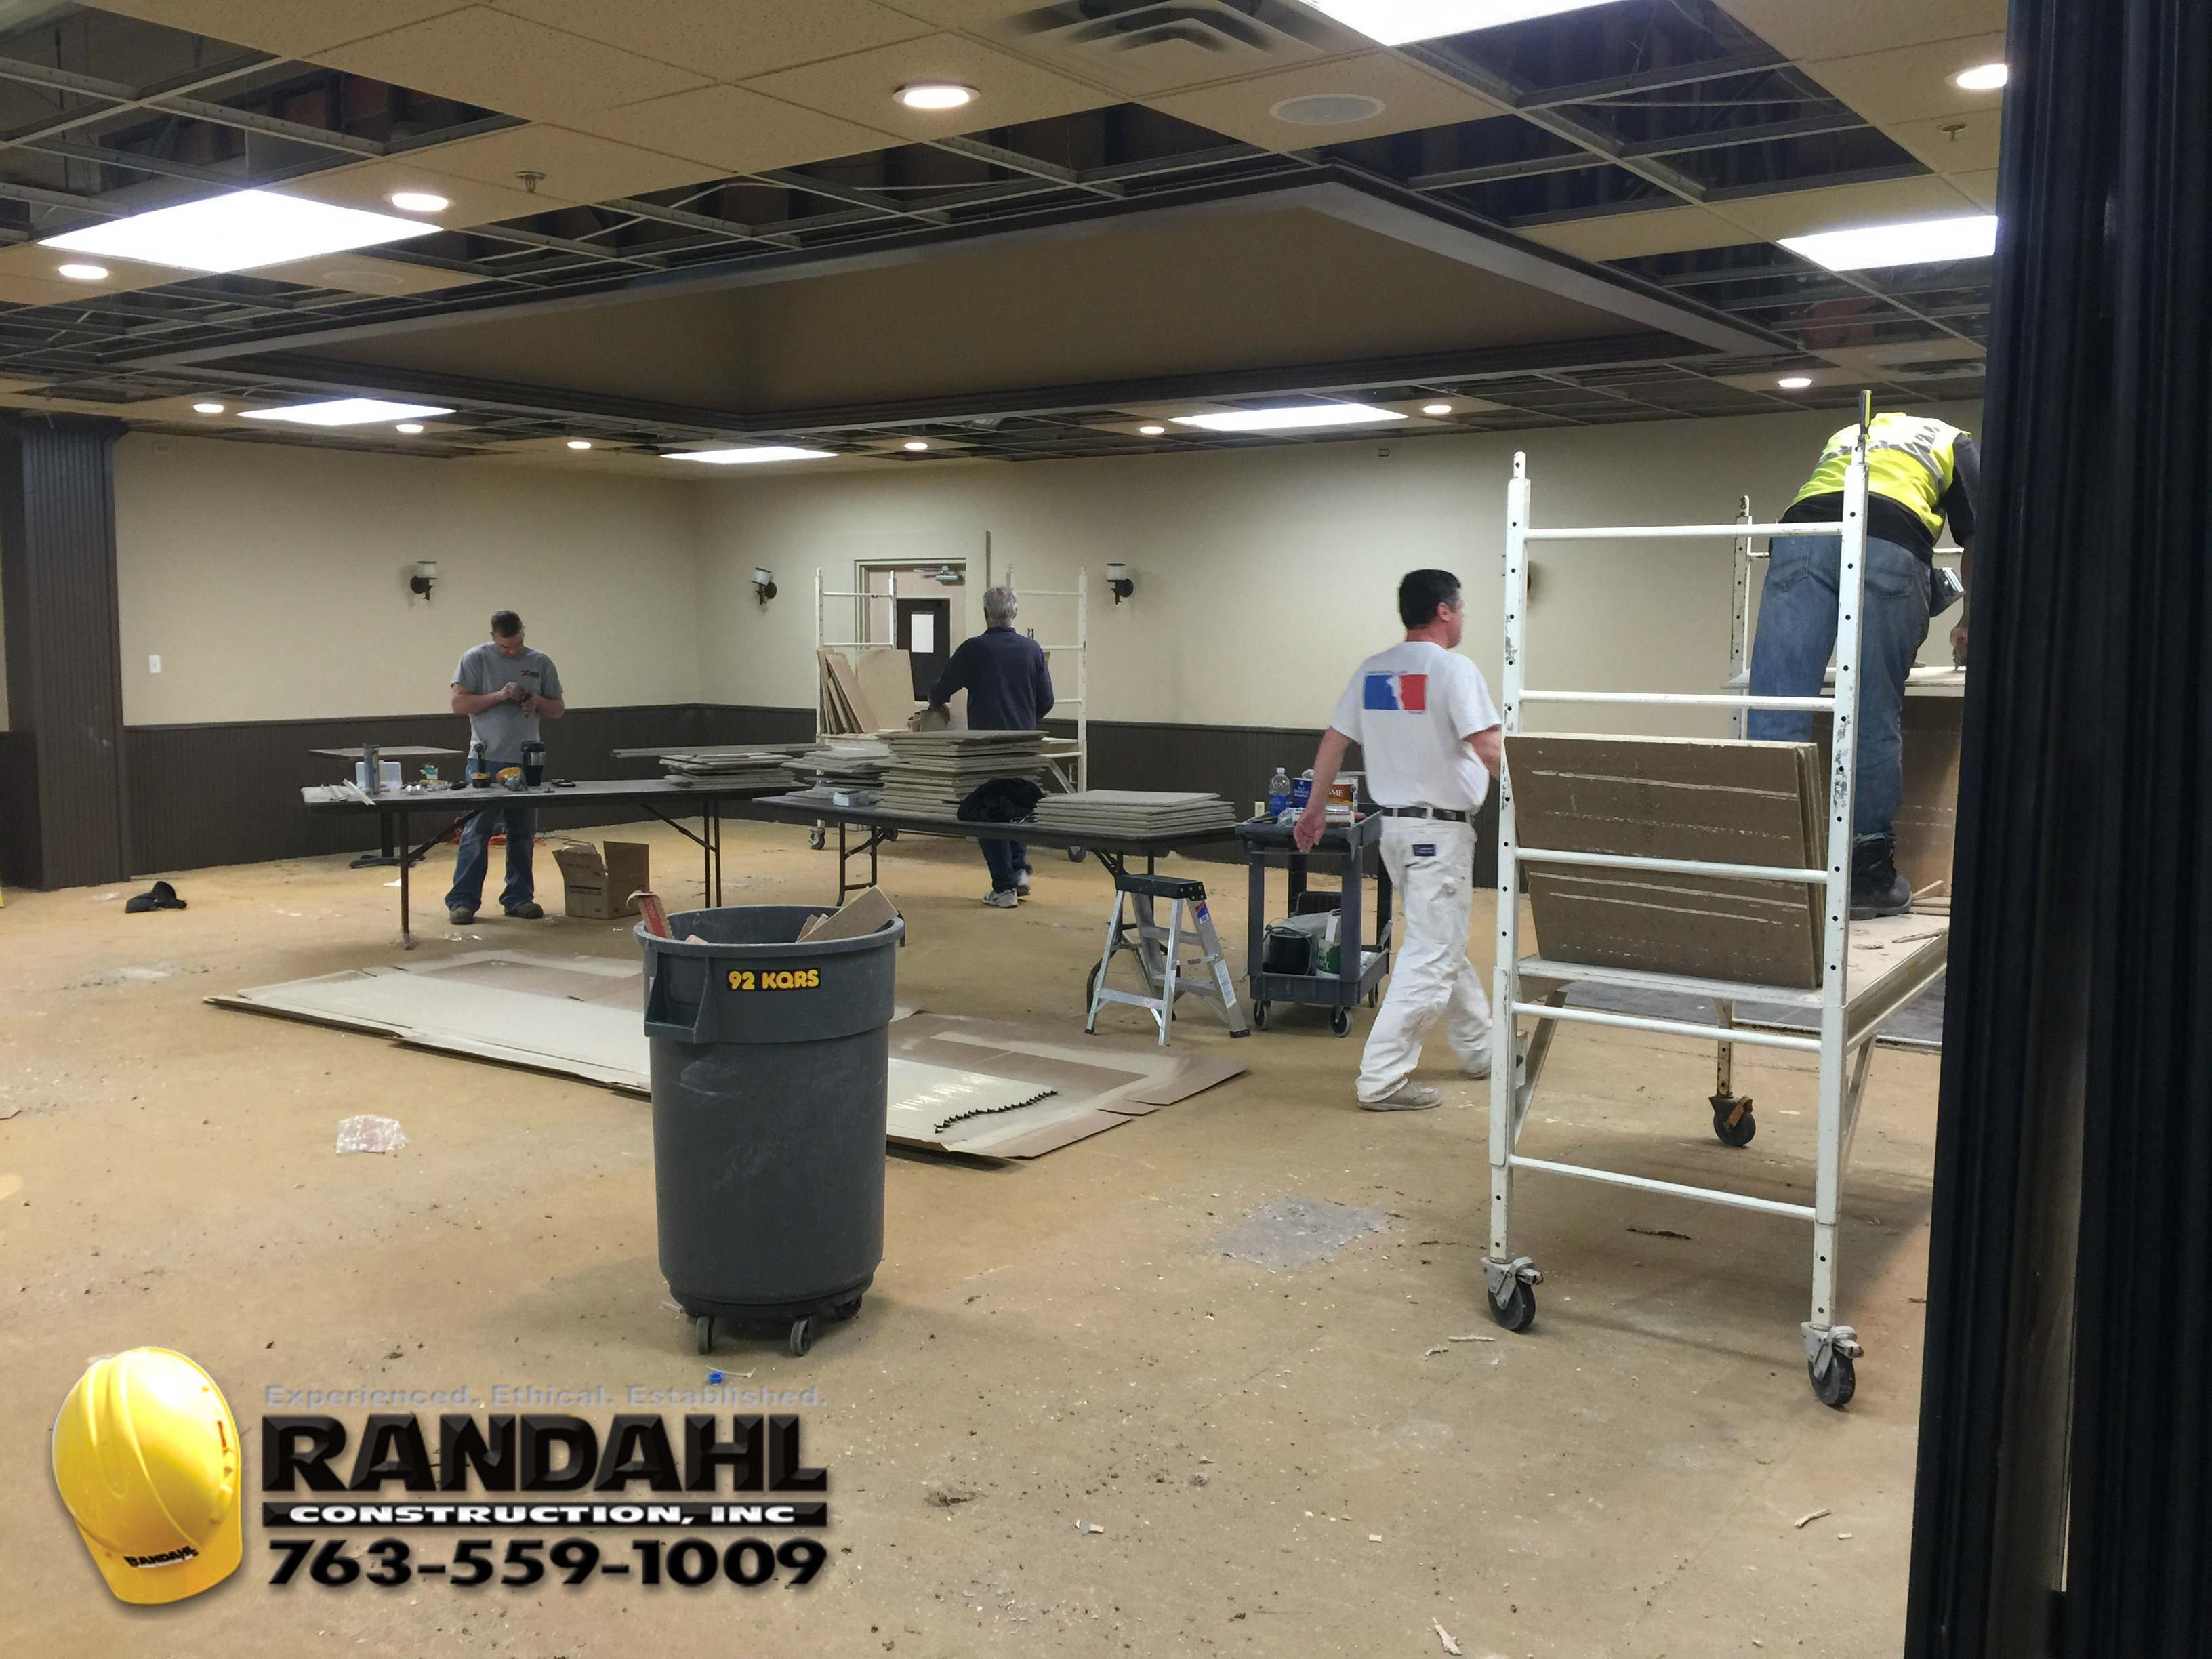 Office Renovation minnesota office renovations and remodeling - randahl construction